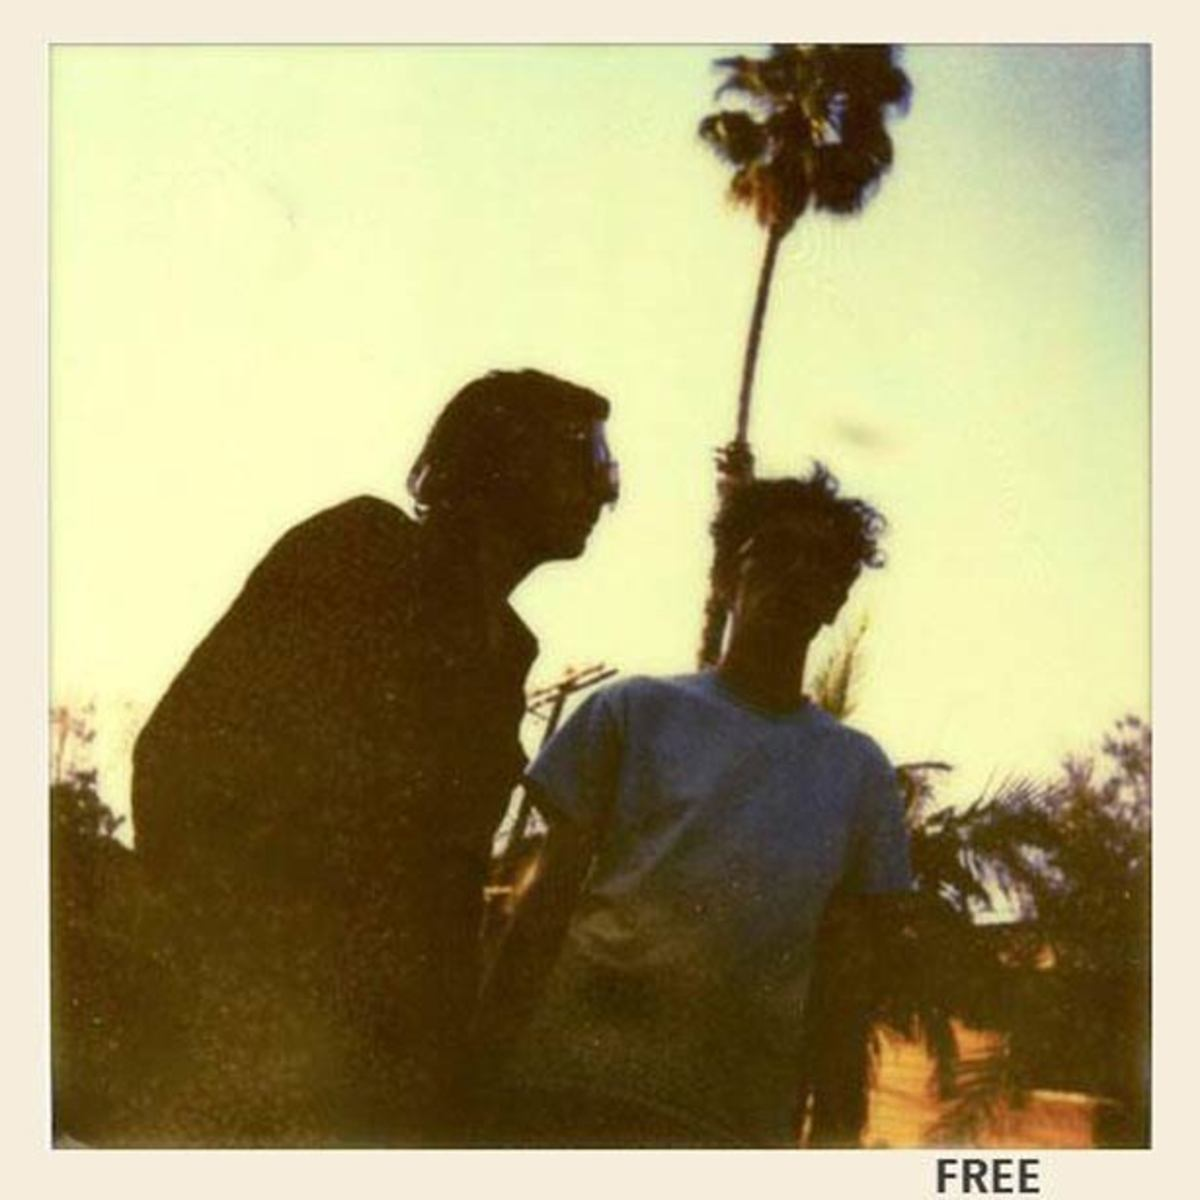 Free Download: 8 Free Downloads From Poolside